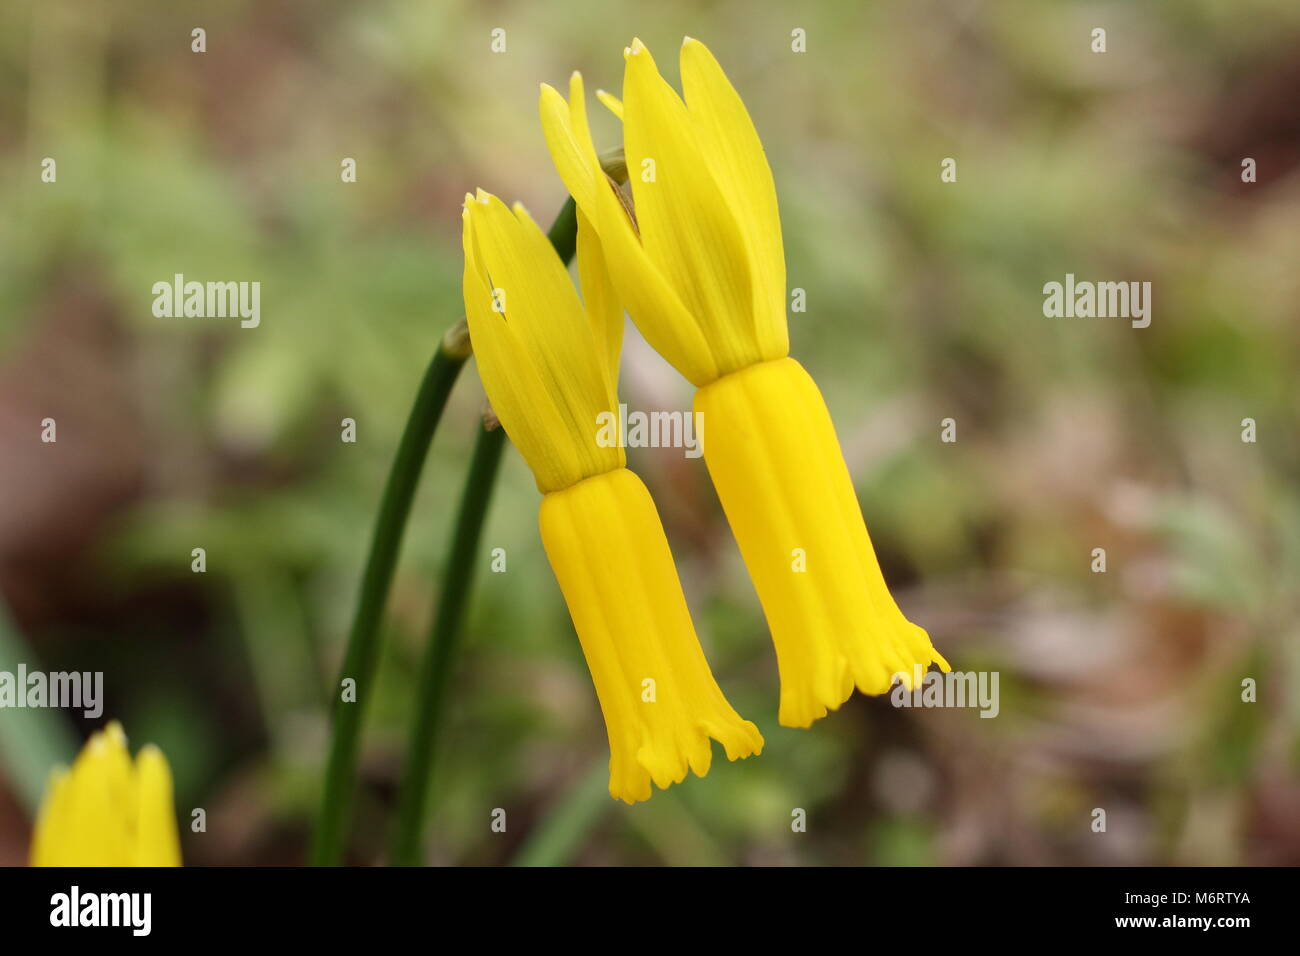 Narcissus Cyclamineus Winter Narcissus Stock Photos And Winter Narcissus Stock